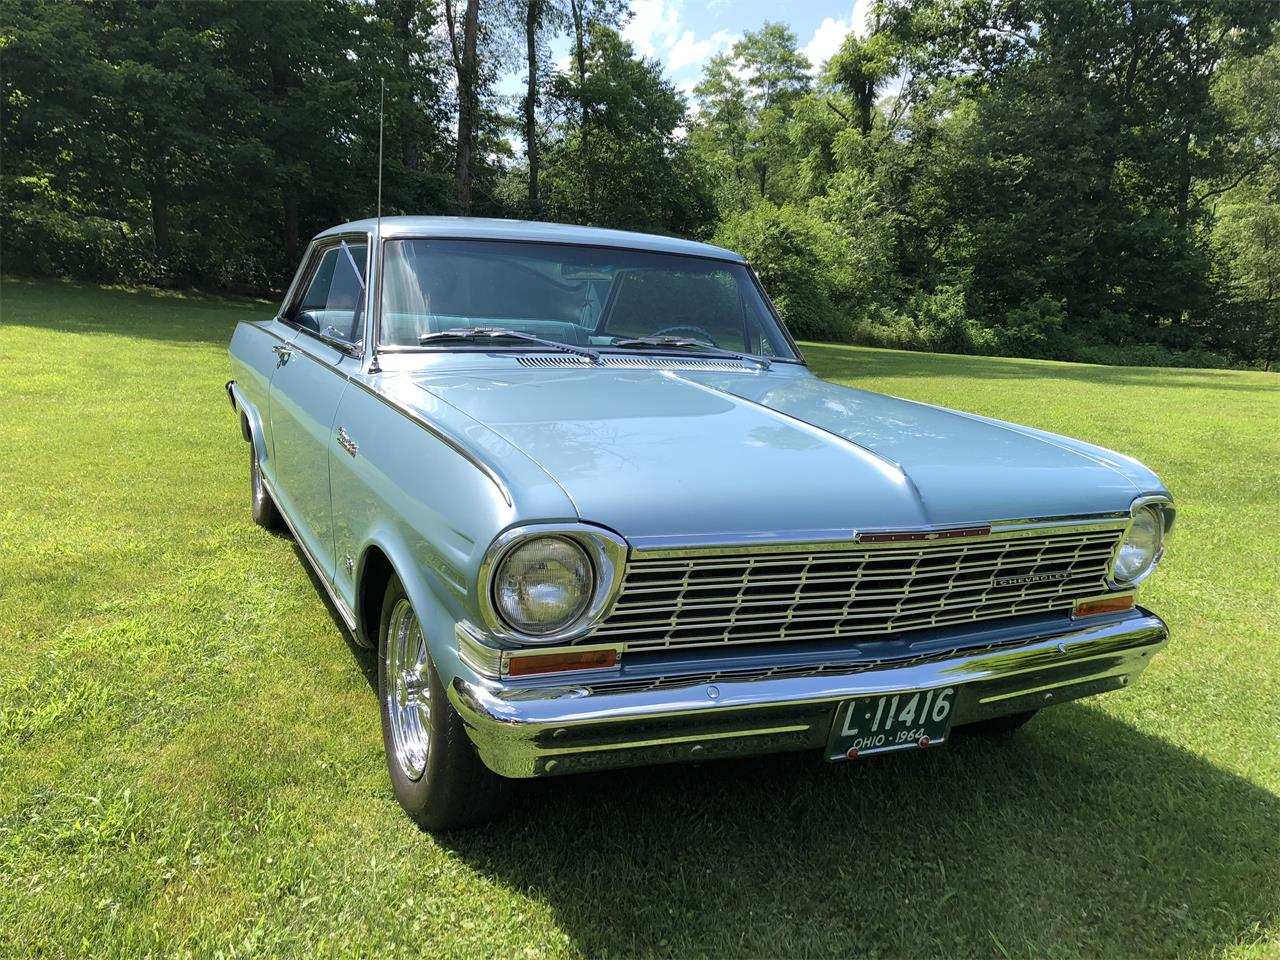 Large Picture of 1964 Chevrolet Nova II SS - $18,000.00 Offered by a Private Seller - PZIX